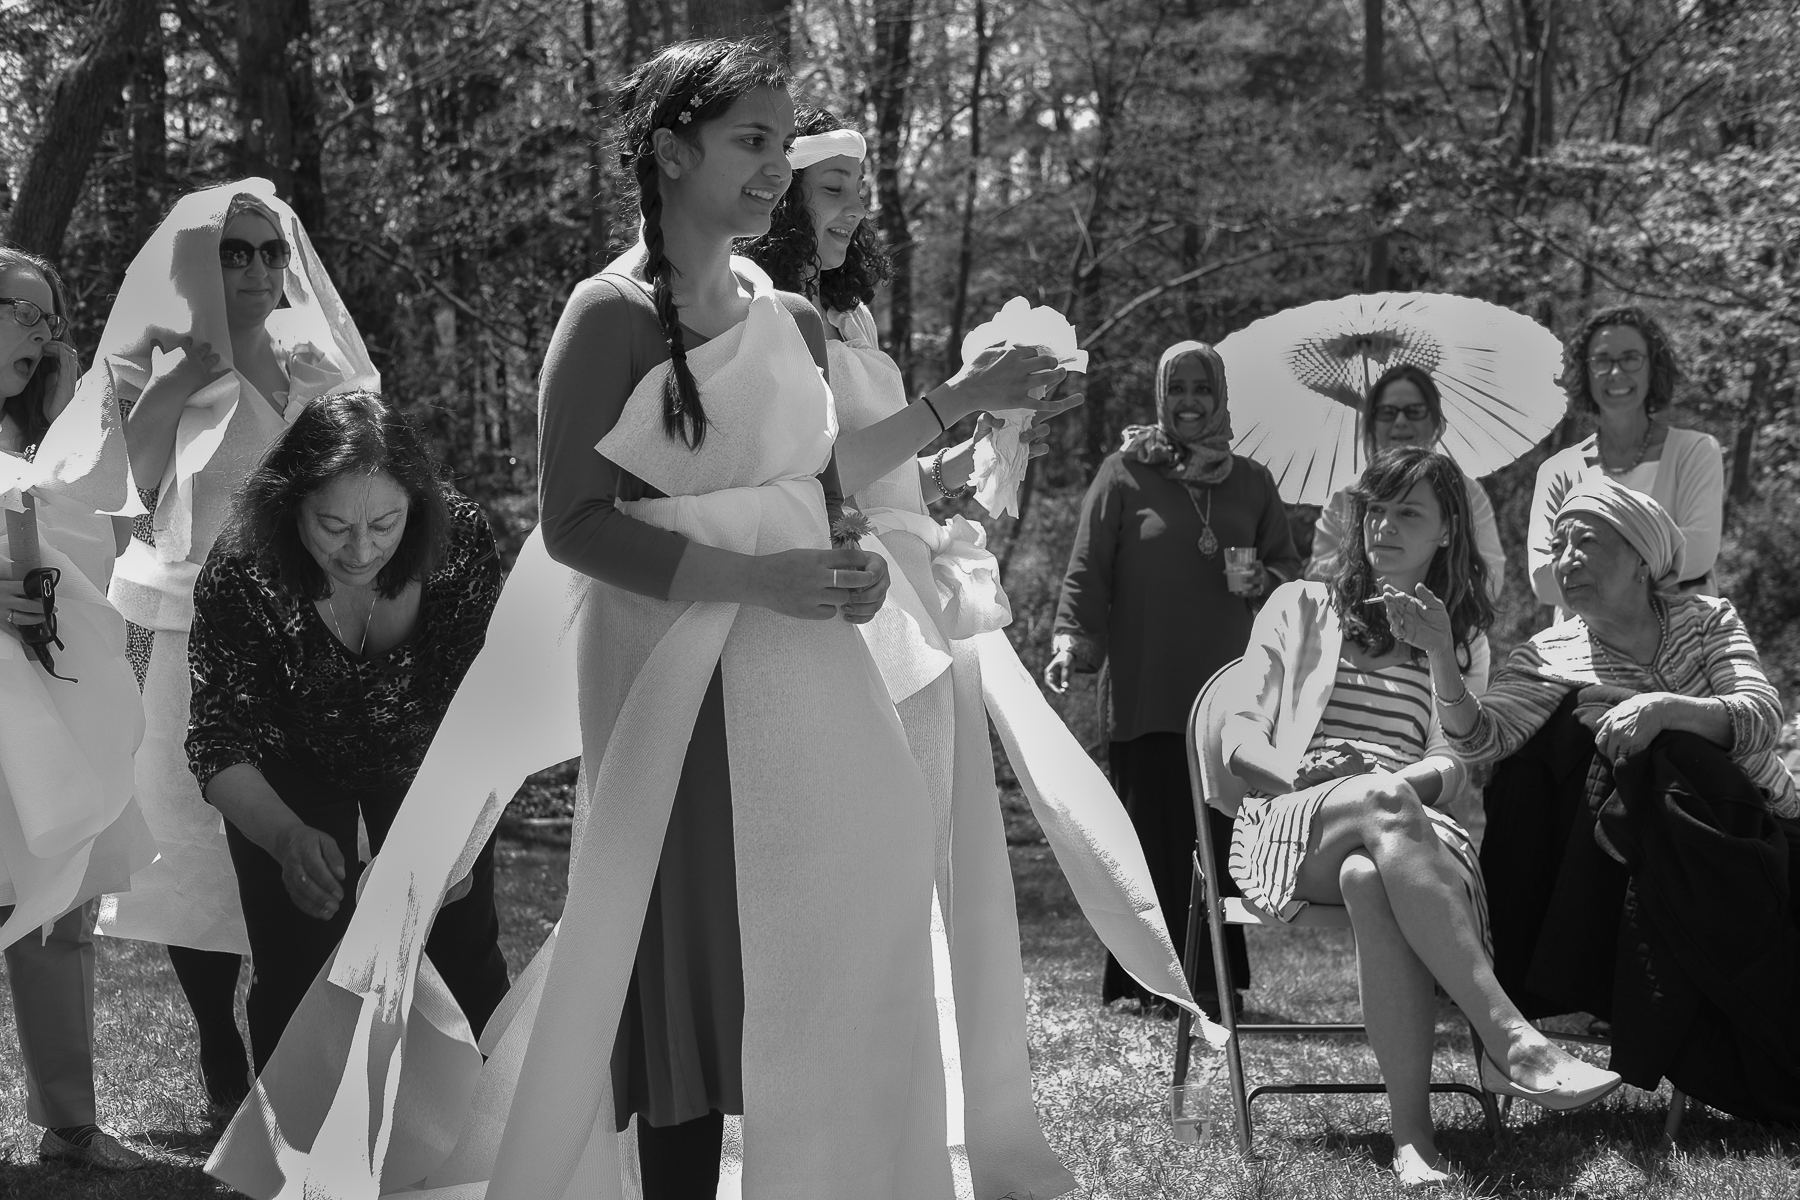 Wedding games: teams of four girls competed against each other to see who could make the best wedding dress from a roll of paper towels in 10 minutes. The bride, Sara, and a seamstress, Sophie Gungar—also known as Anane to all of the girls in the comunity, which means grandmother in Turkish—judged the final products.